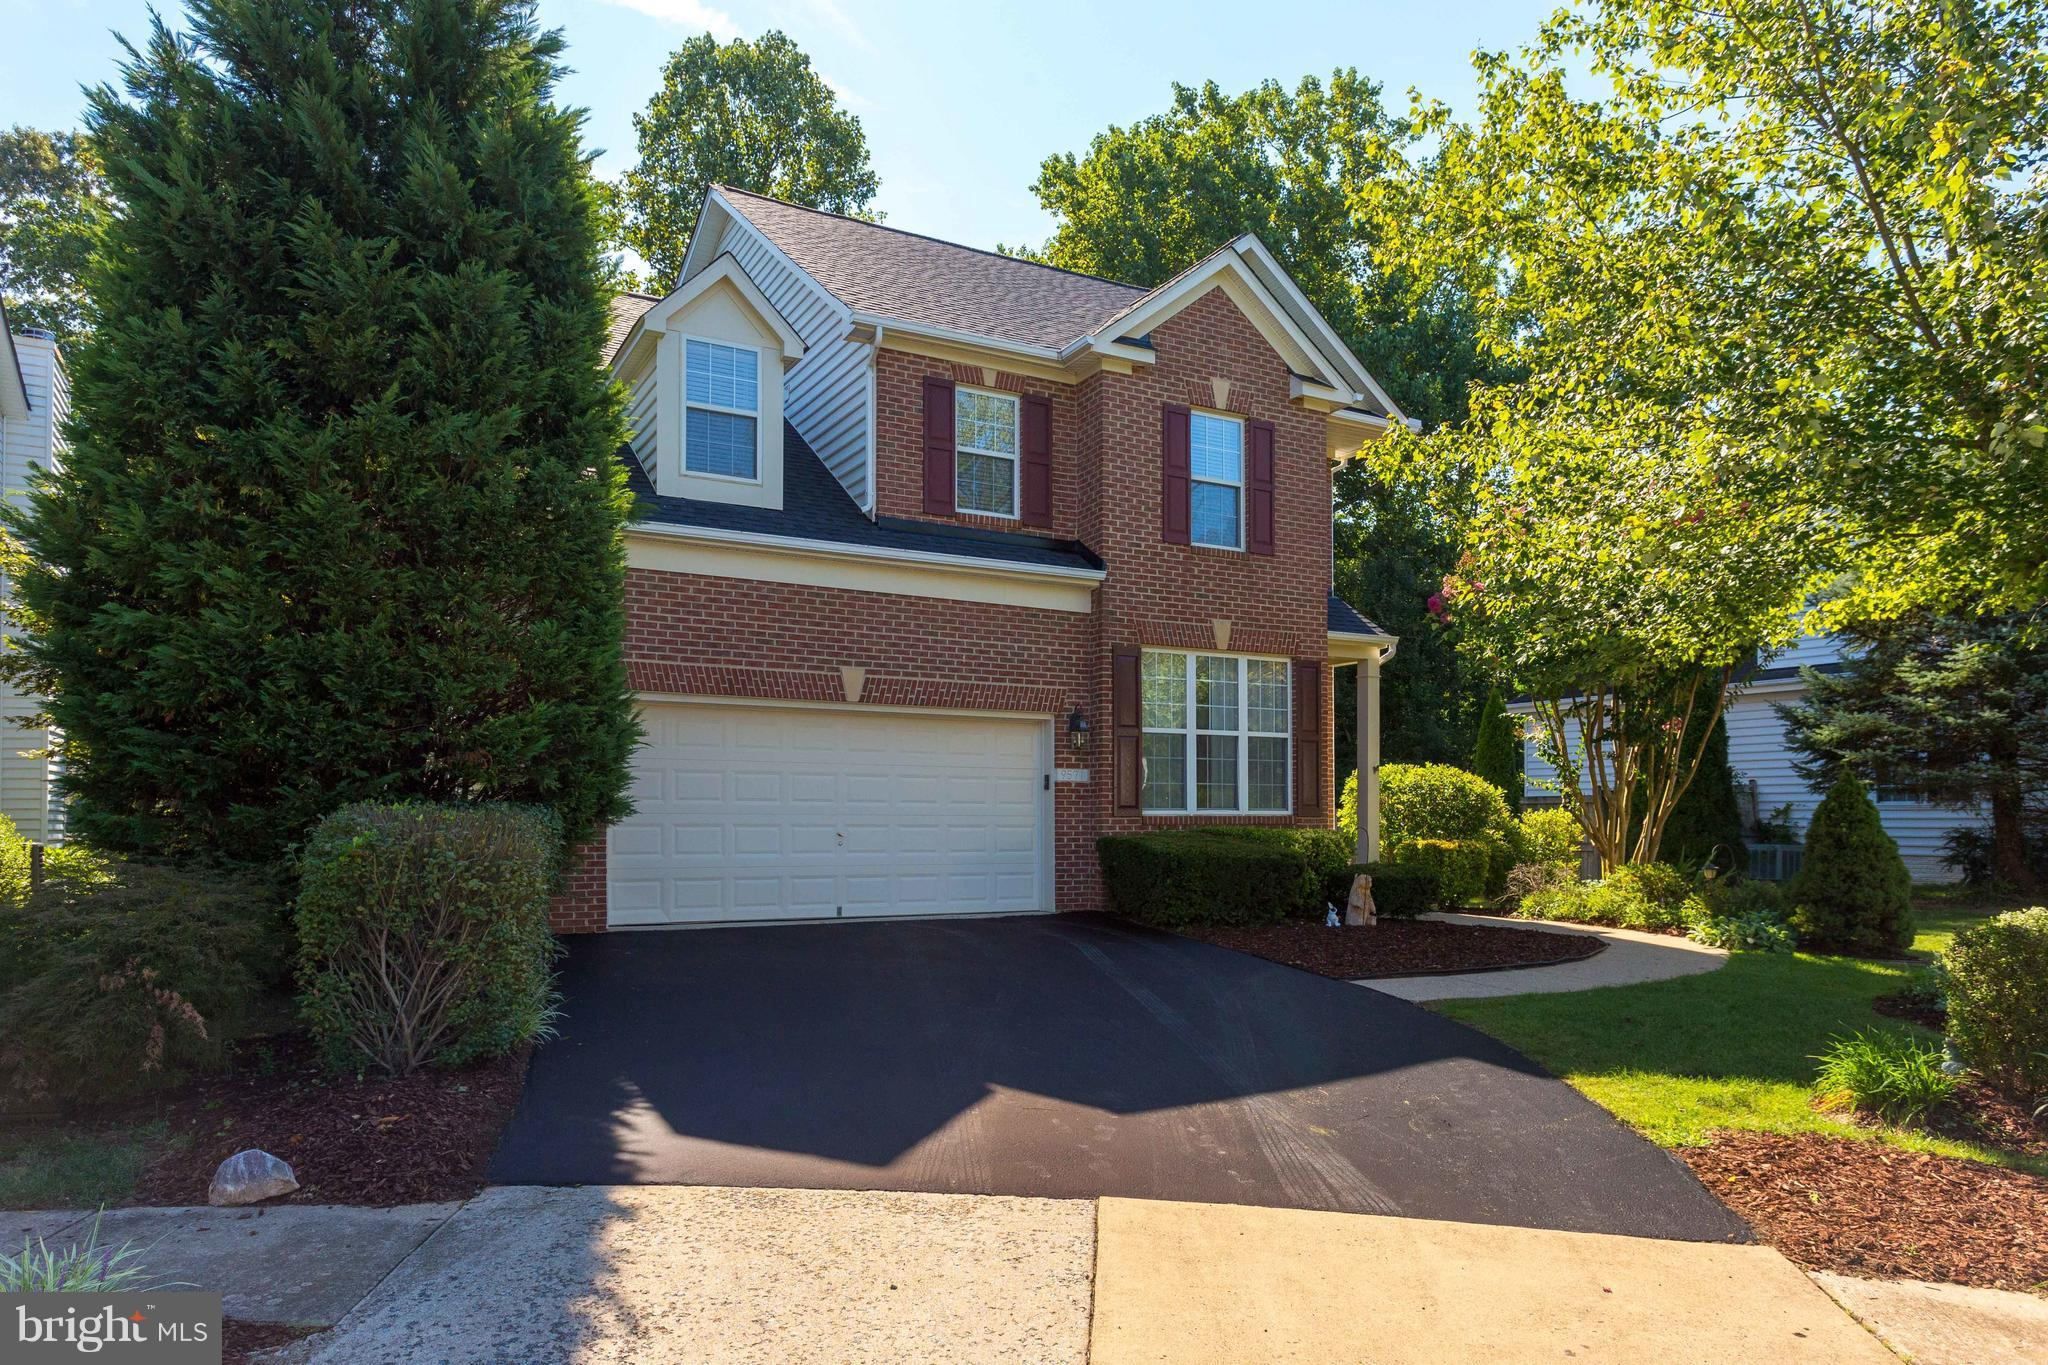 Beautifully updated & maintained 4BR/4.5BA on cul-de-sac lot in The Pines! New roof! New baths! Gleaming hardwood floors! Granite eat-in kitchen w/ island open to FR w/ gas fireplace open to deck! Formal LR& DR! Office on main! Master suite w/ walkin closet, double vanities, soaking tub & separate shower! Large secondary BRs! Finished basement w/ full BA & potential 5th BR! More photos in tour!